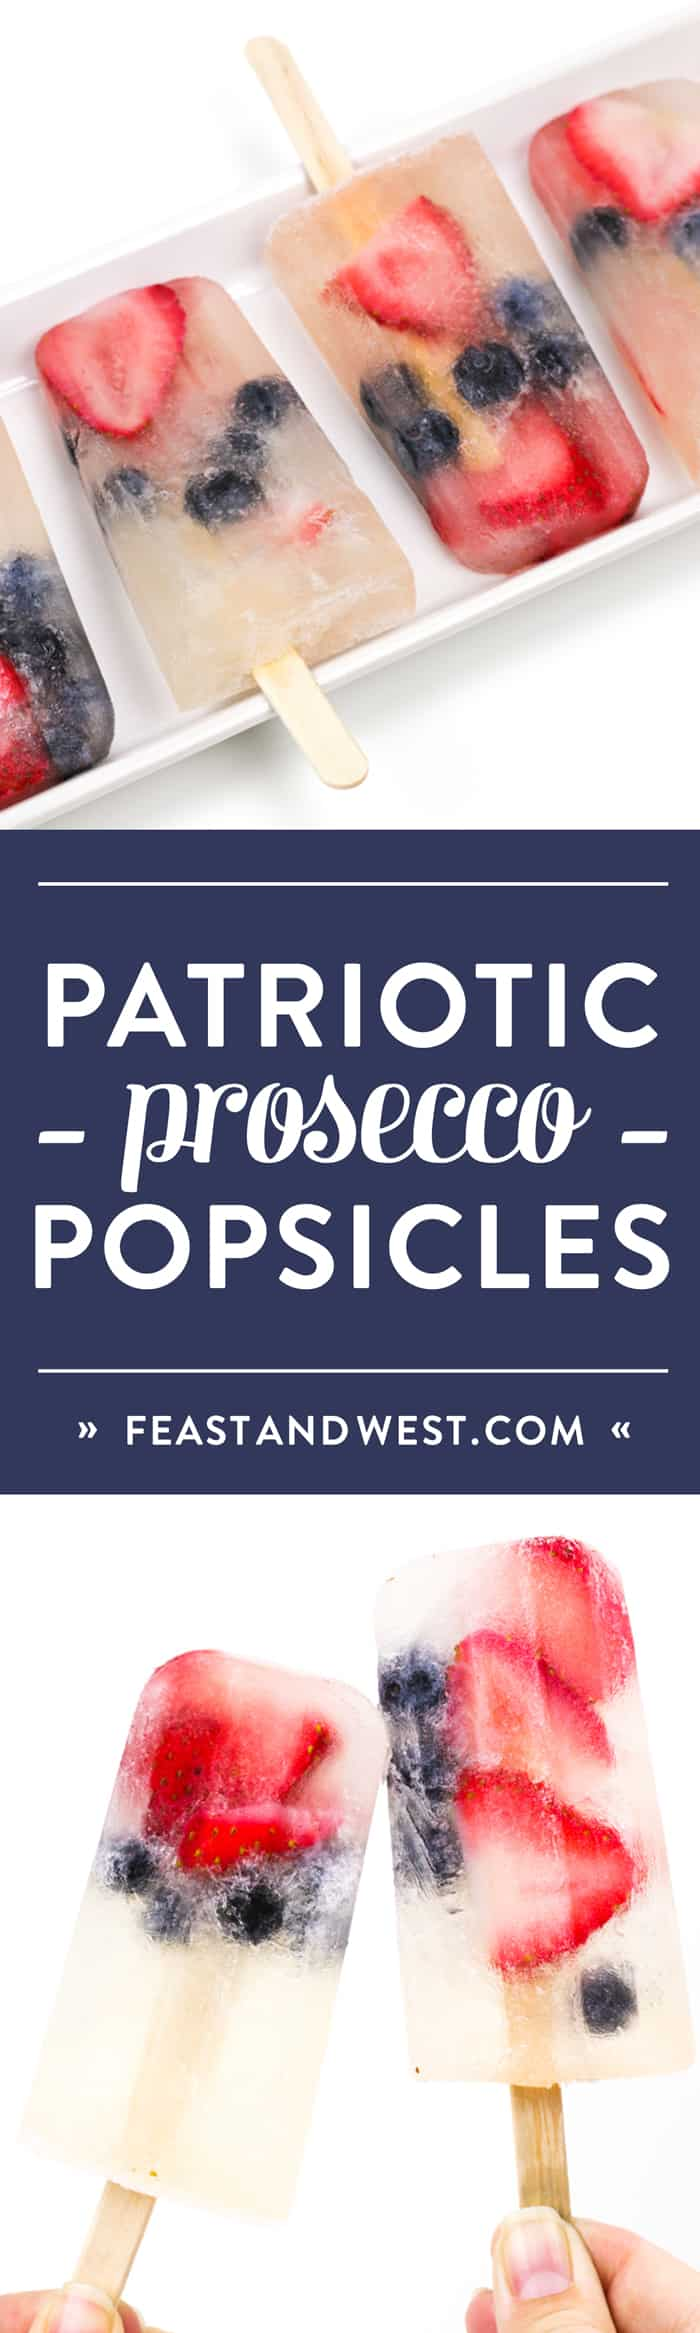 Boozy and patriotic Prosecco Popsicles are the cutest way to show your colors this holiday weekend! Berries and frozen champagne make for a darling red, white and blue treat you can enjoy anytime! Click through to watch the video! (via feastandwest.com)